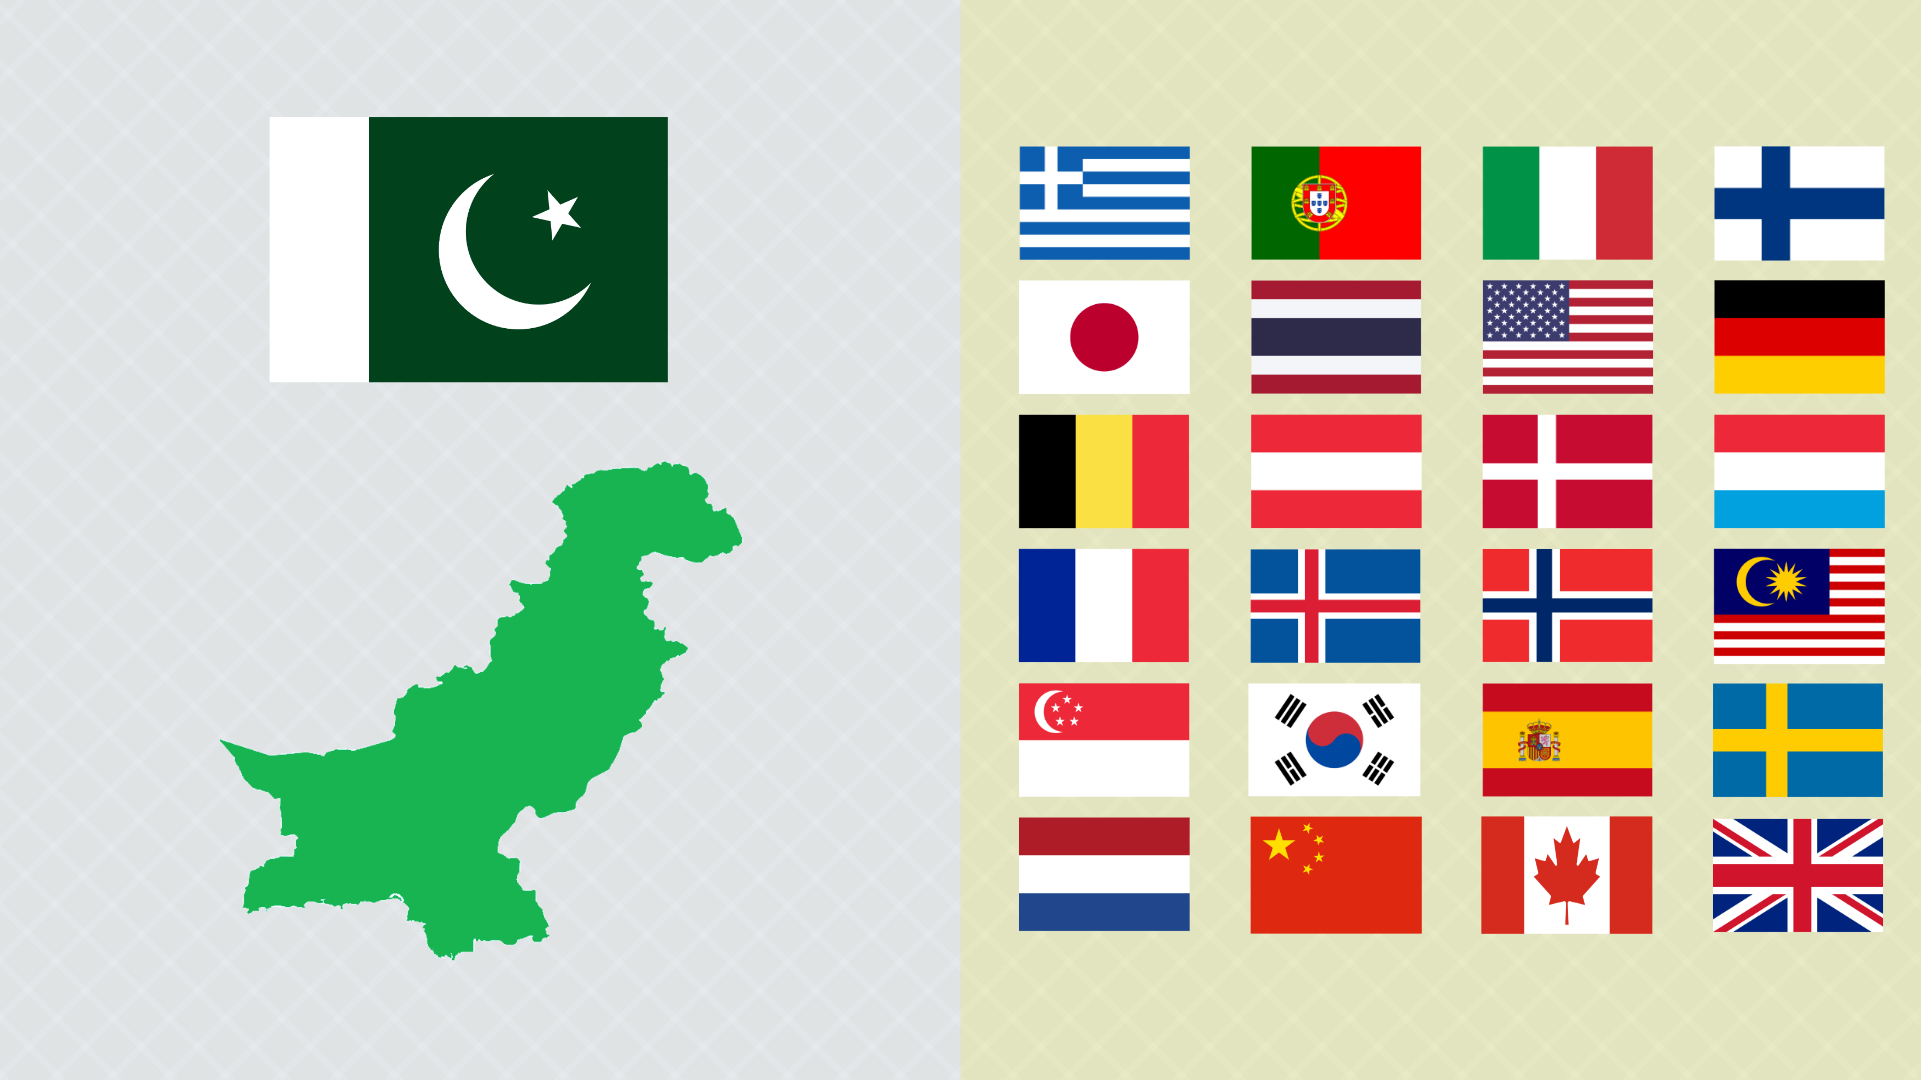 Pakistan visa on arrival is given to these 24 countries.